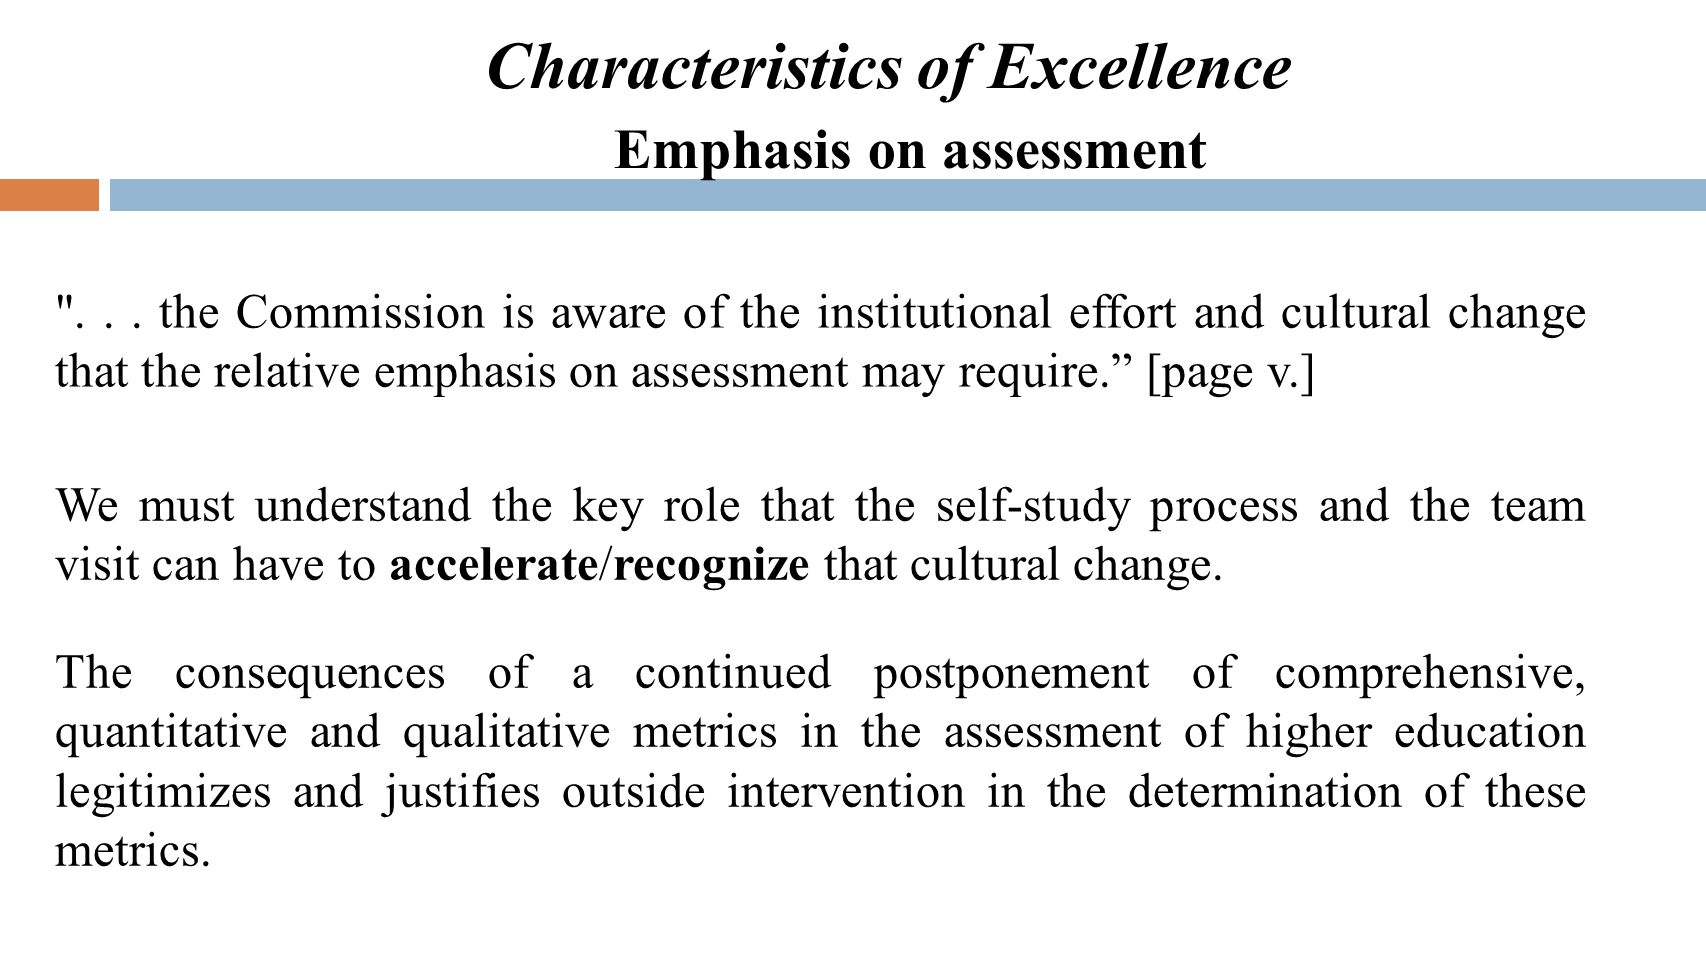 Characteristics of Excellence Emphasis on assessment